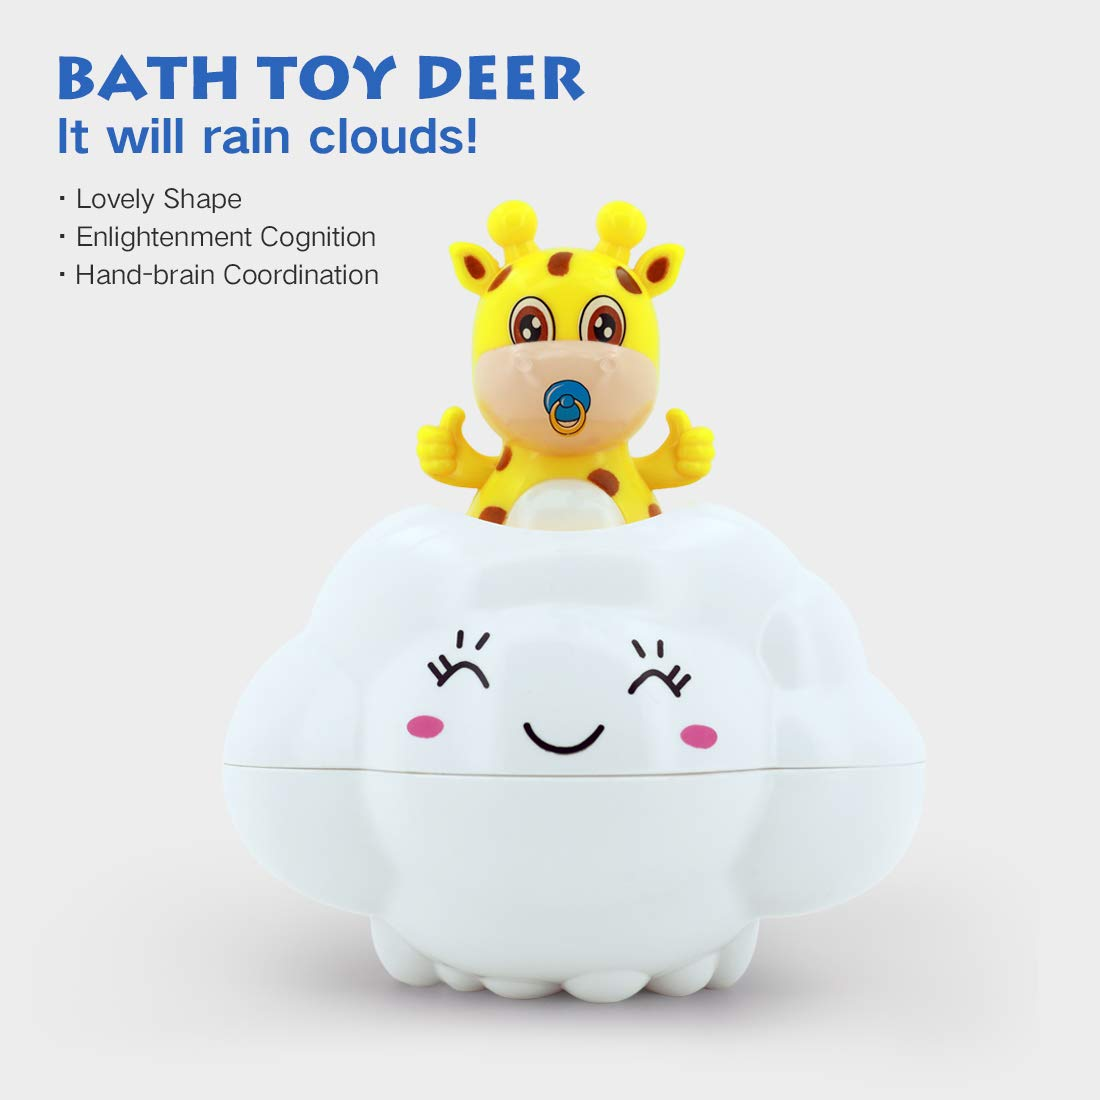 Giraffe Hidden in The Rain Cloud Childrens Bath Tub Water Toys Super Interactive Bathtub Happy Hour Game in The Bath Bathroom Pool Bath Baby AURANY Bath Toys